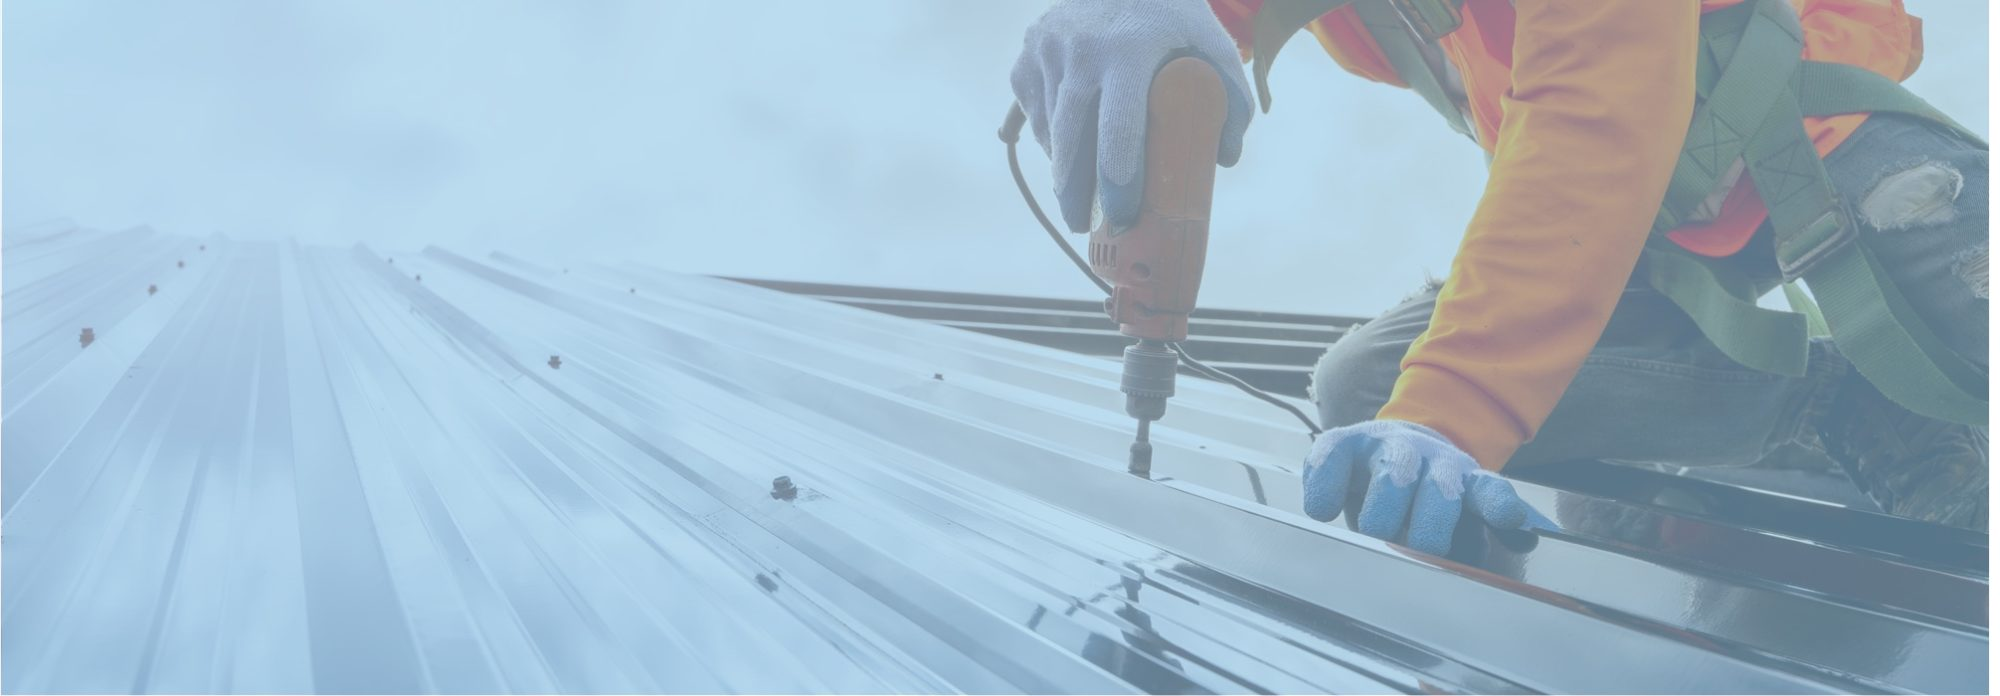 Roofing Work at MKC Group